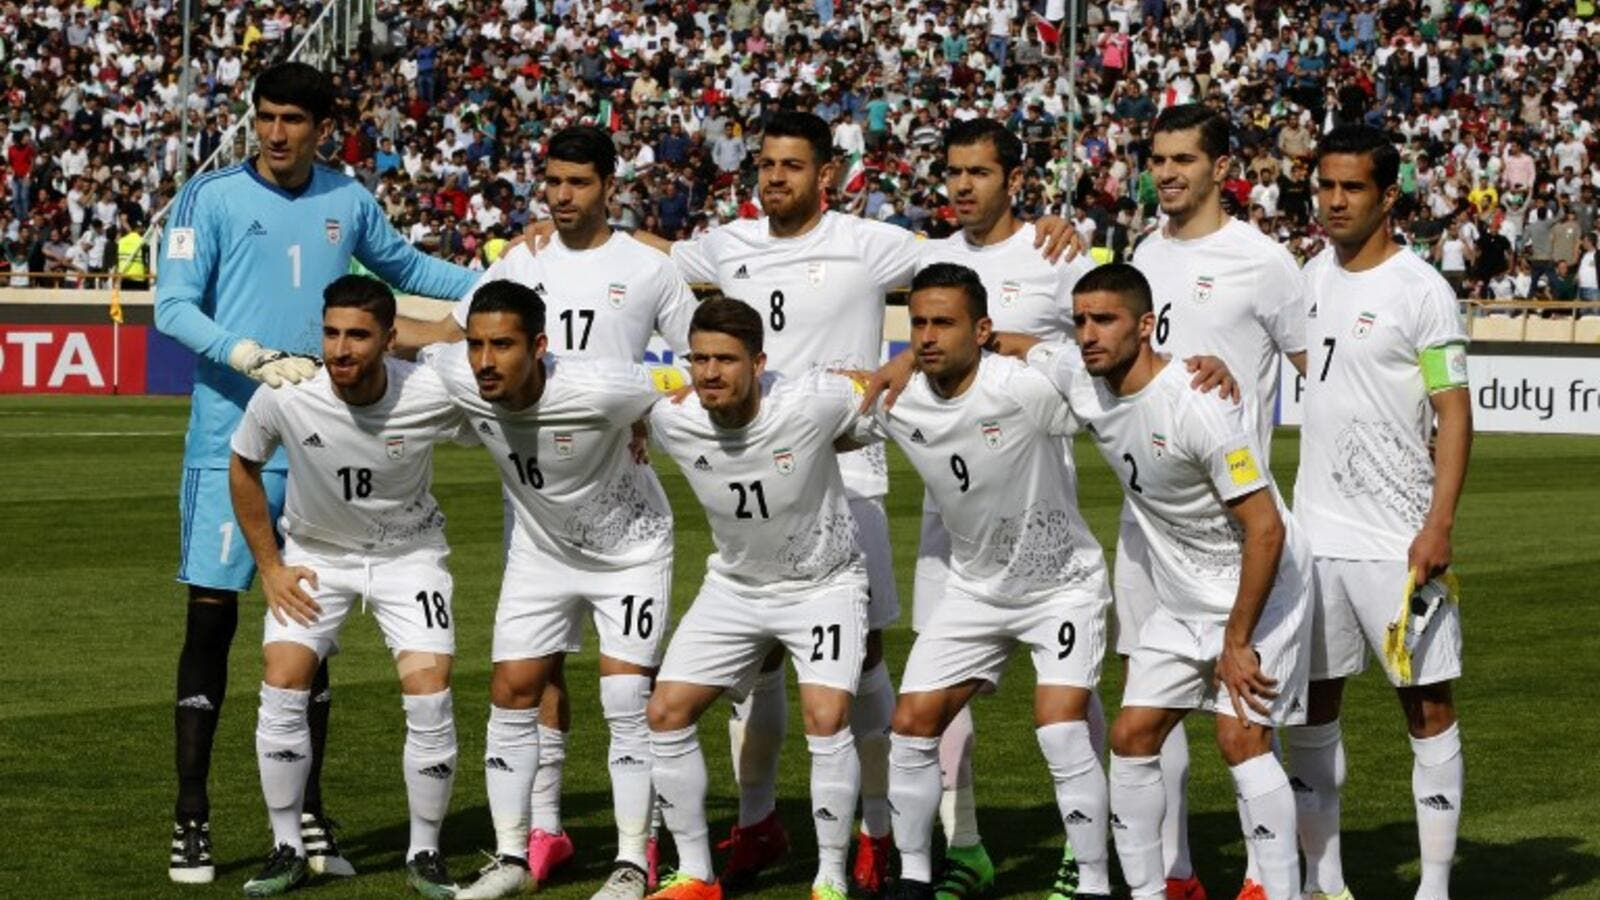 acb555b7a Iran to Face Panama in Pre-FIFA World Cup Friendly Next Month | Al ...